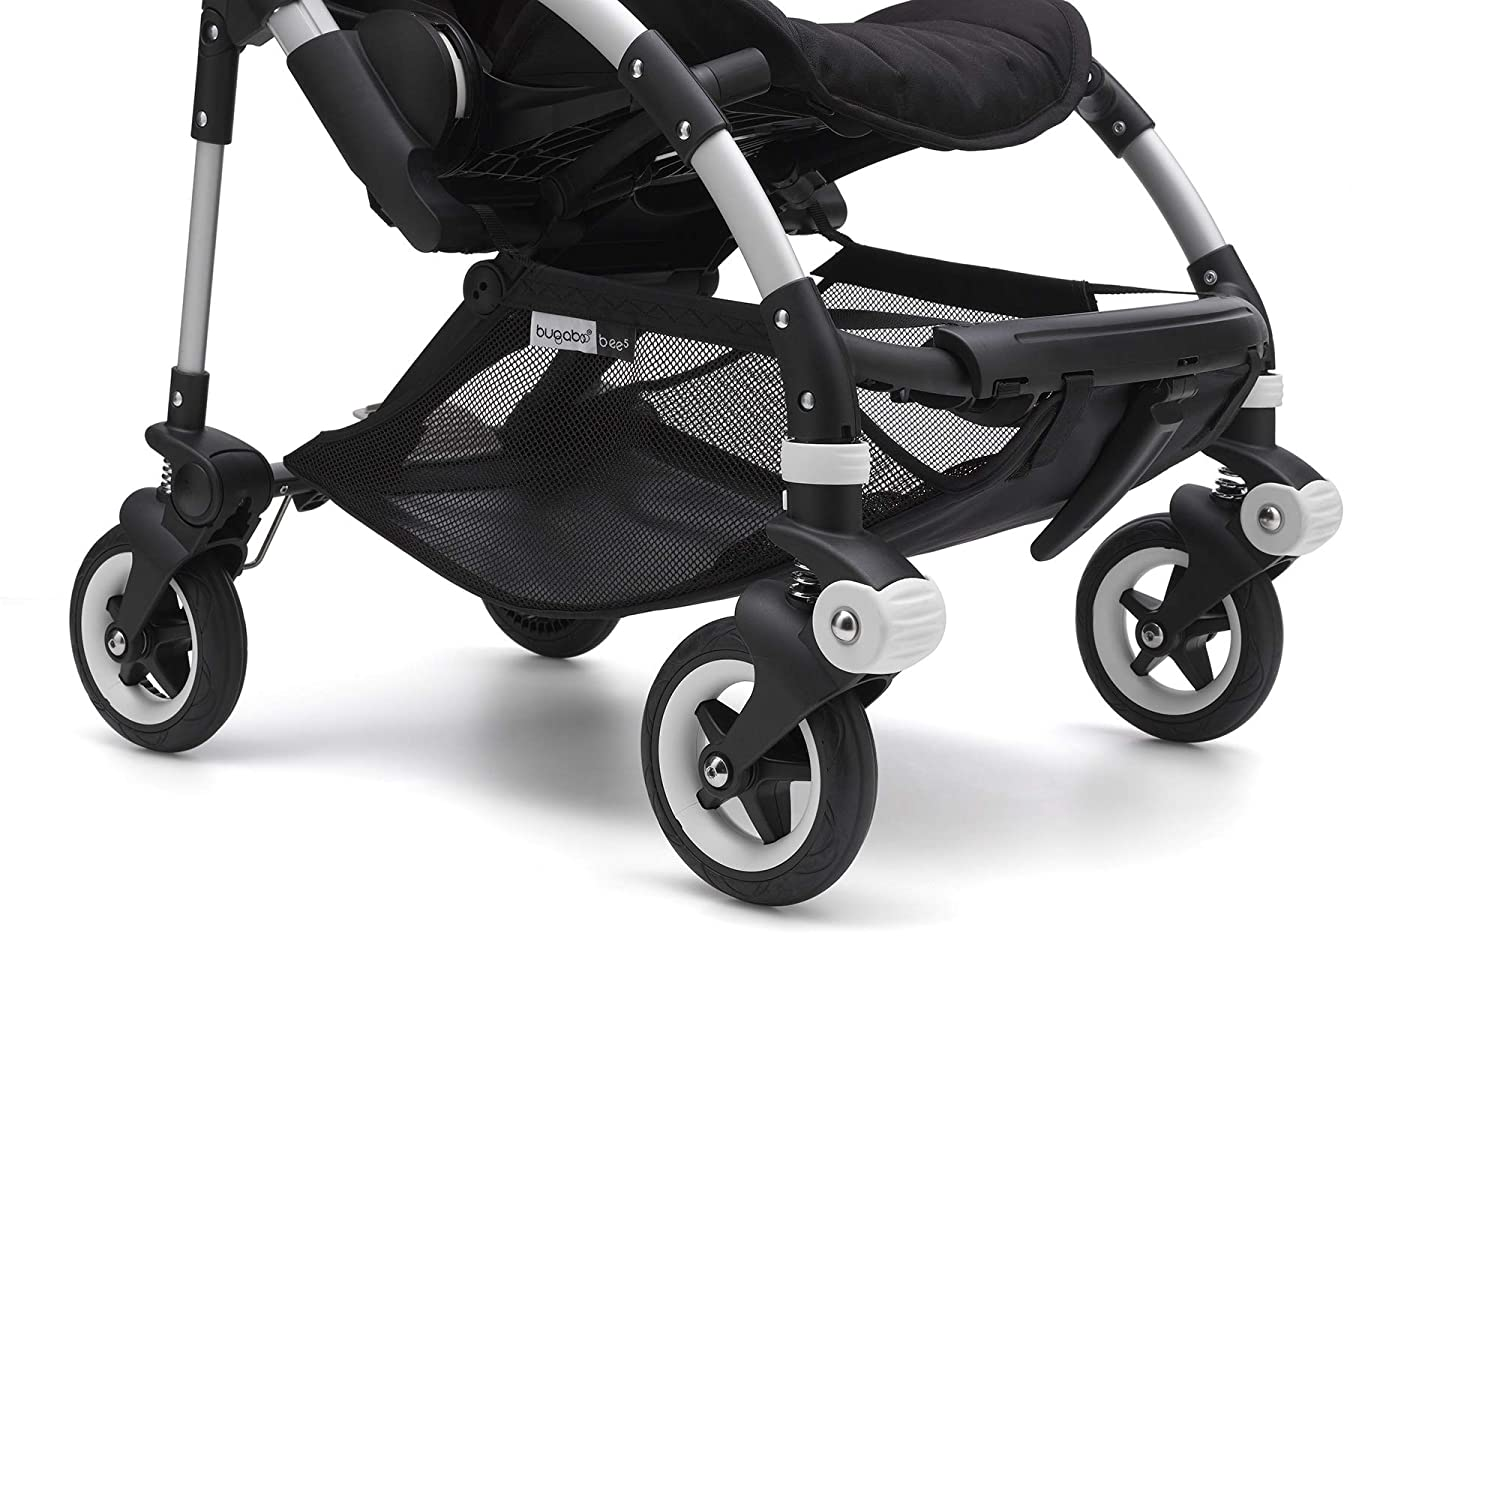 Bee3 and Bee5 Stress Free Storage at Home or on The Go Bugaboo Bee Self Stand Extension Compatible with The Bugaboo Bee